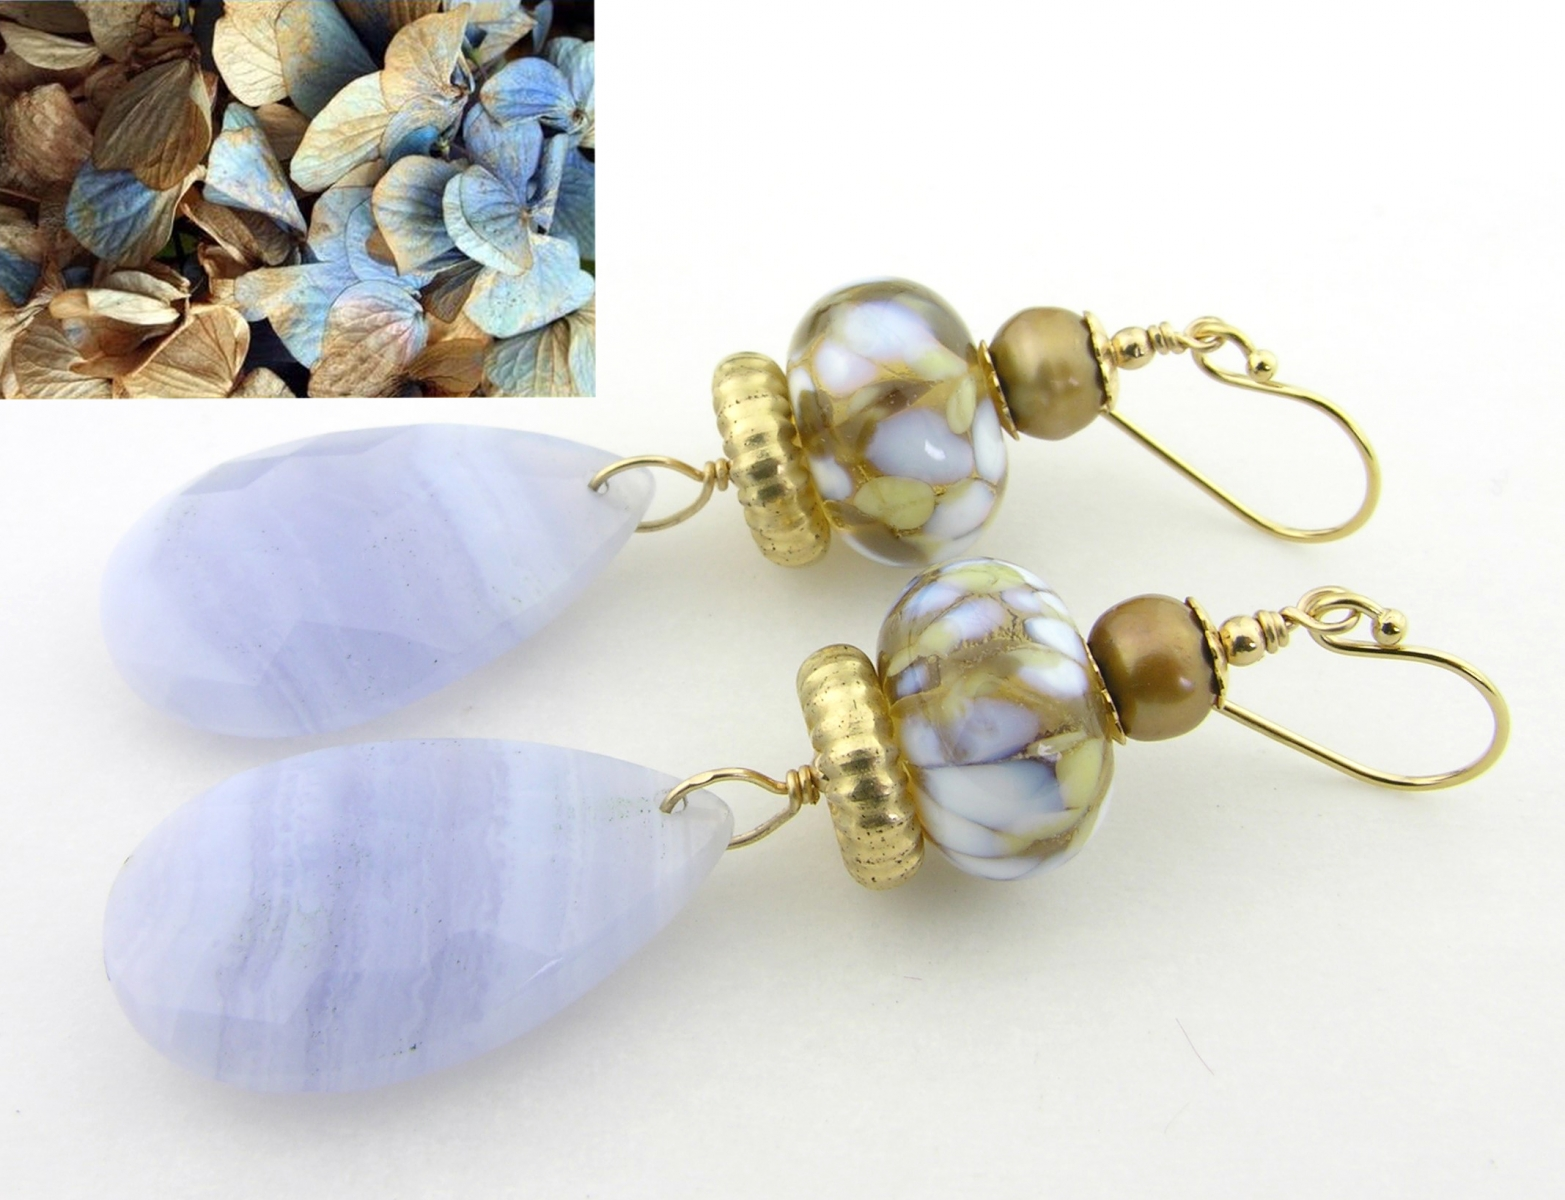 Whispers of Blue Earrings - blue lace agate, light blue, light brown, topaz, white artisan lampwork, freshwater pearls and gold fill